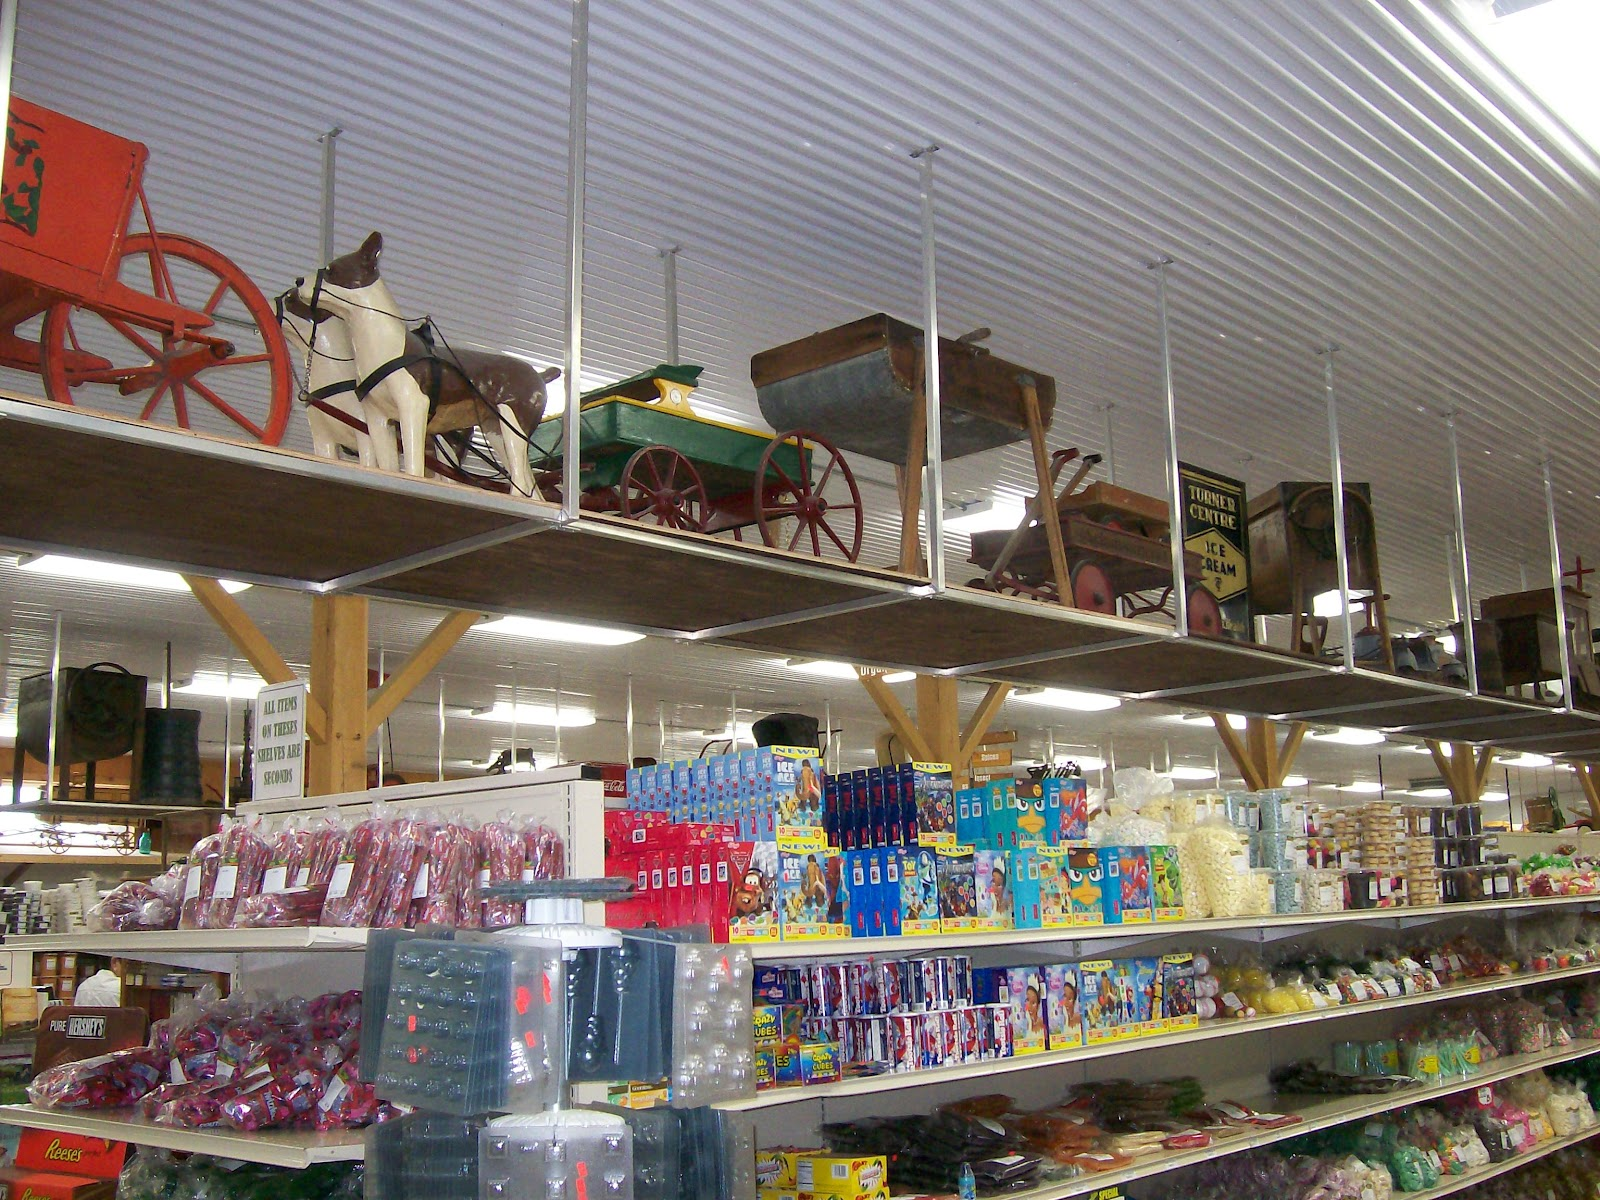 Simple Pleasures Amish Discount Grocery Store